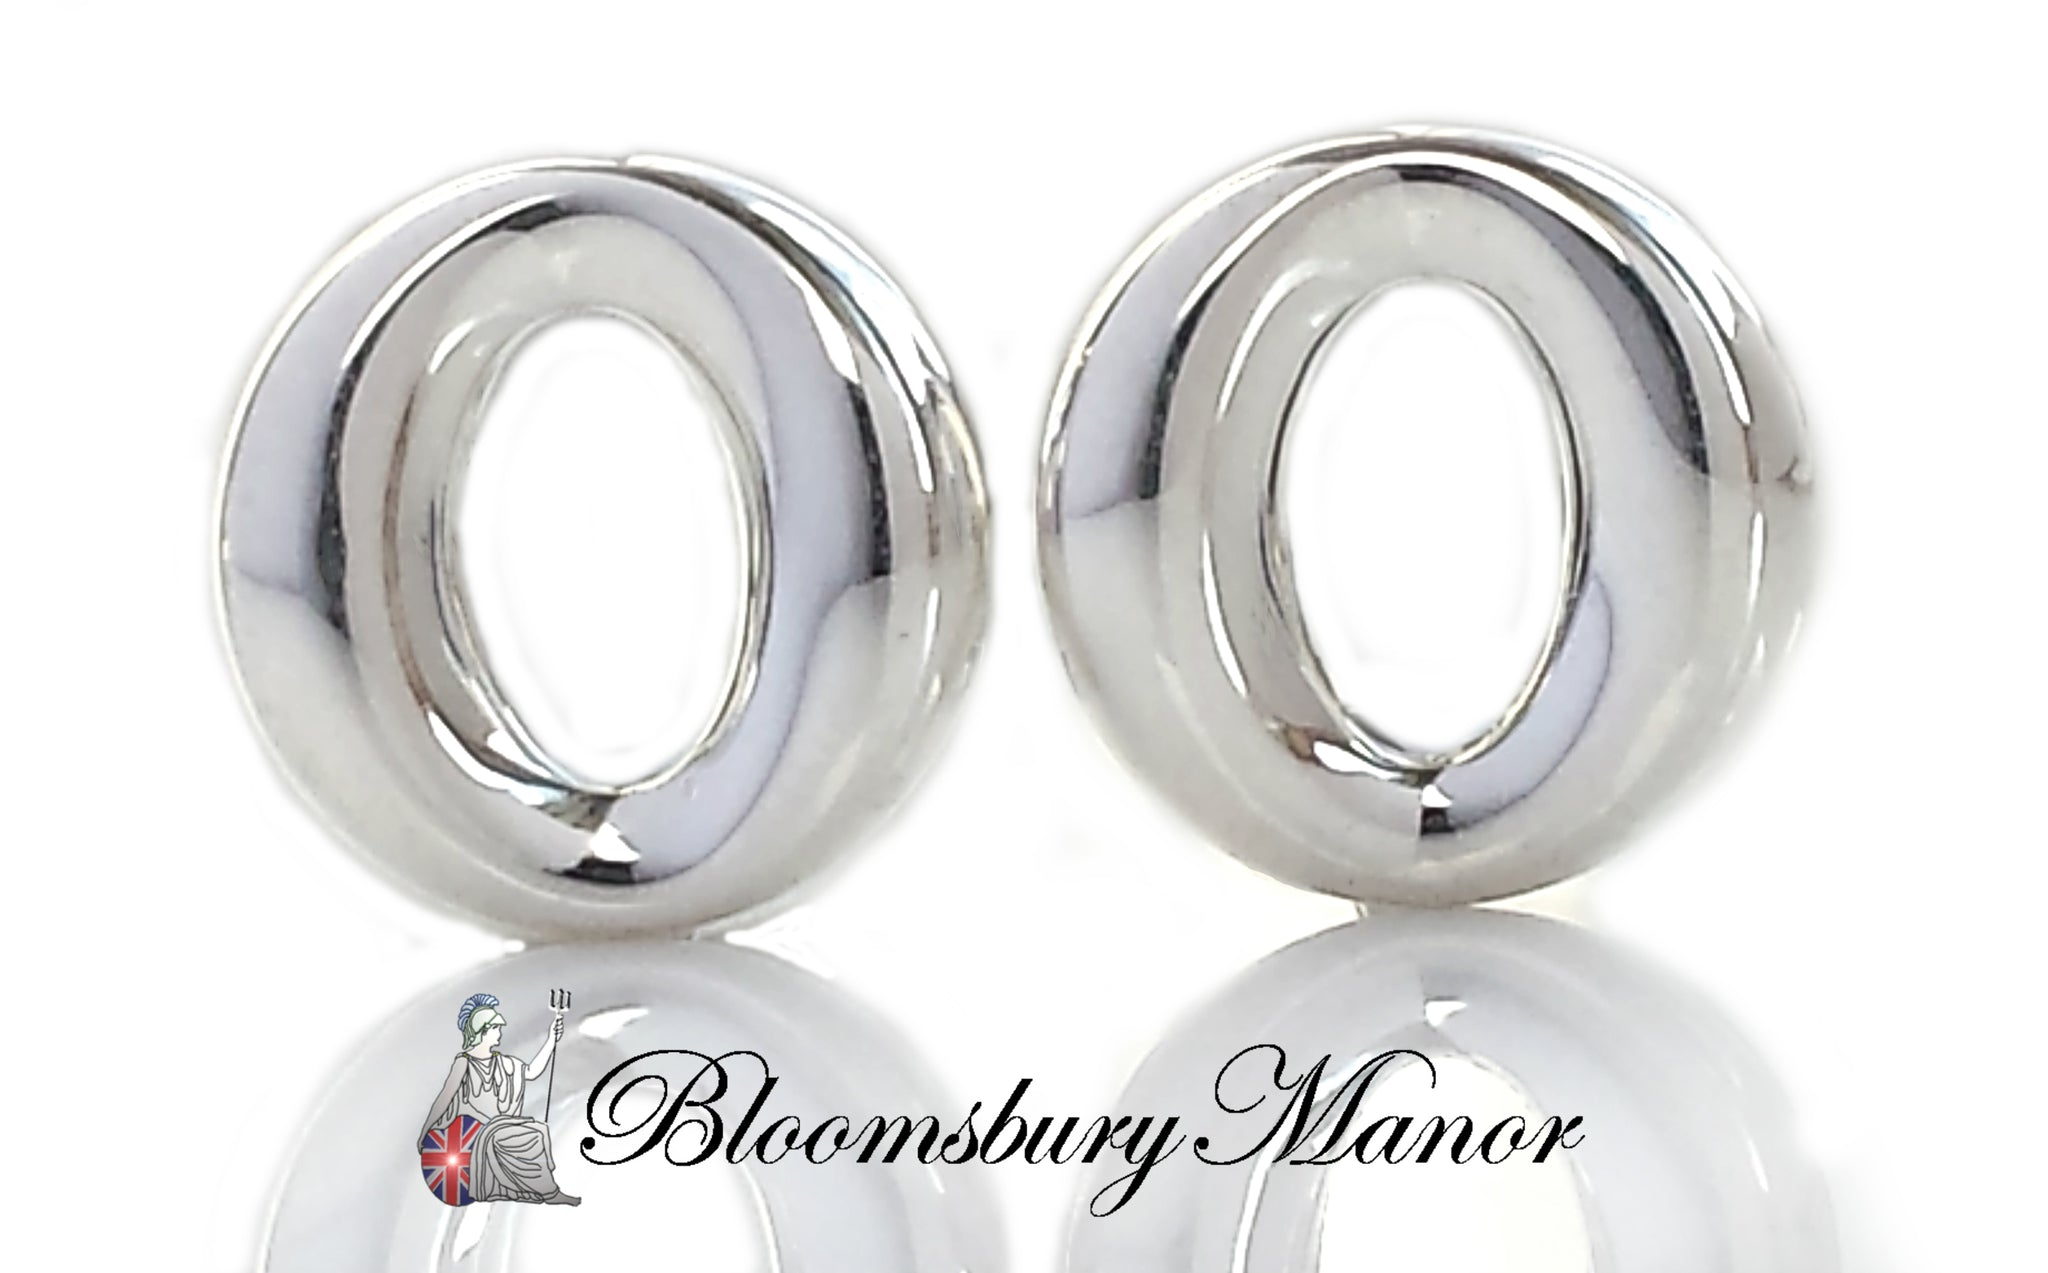 6a1128a6a Tiffany & Co Sterling Silver Sevillana O Earrings - Bloomsbury Manor Ltd